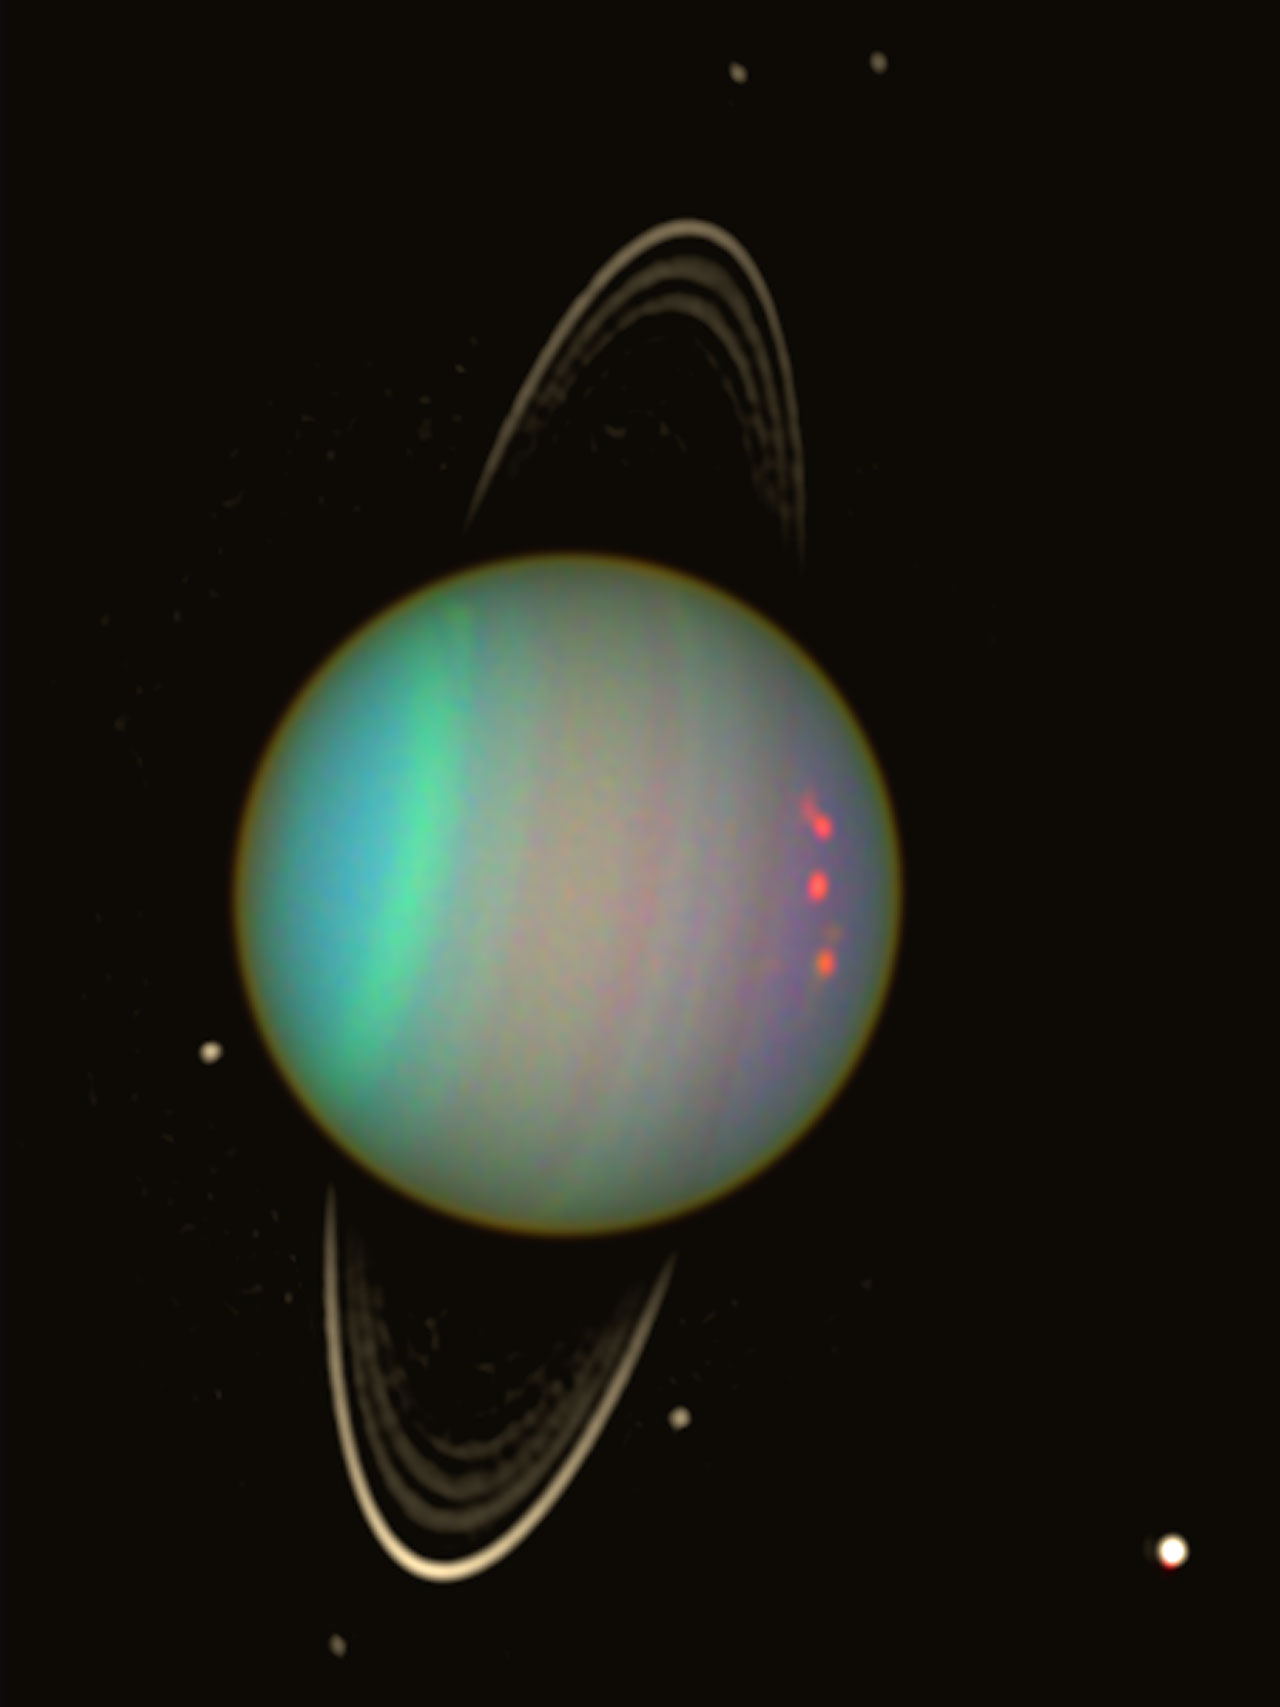 Uranus - Wider View | ESA/Hubble